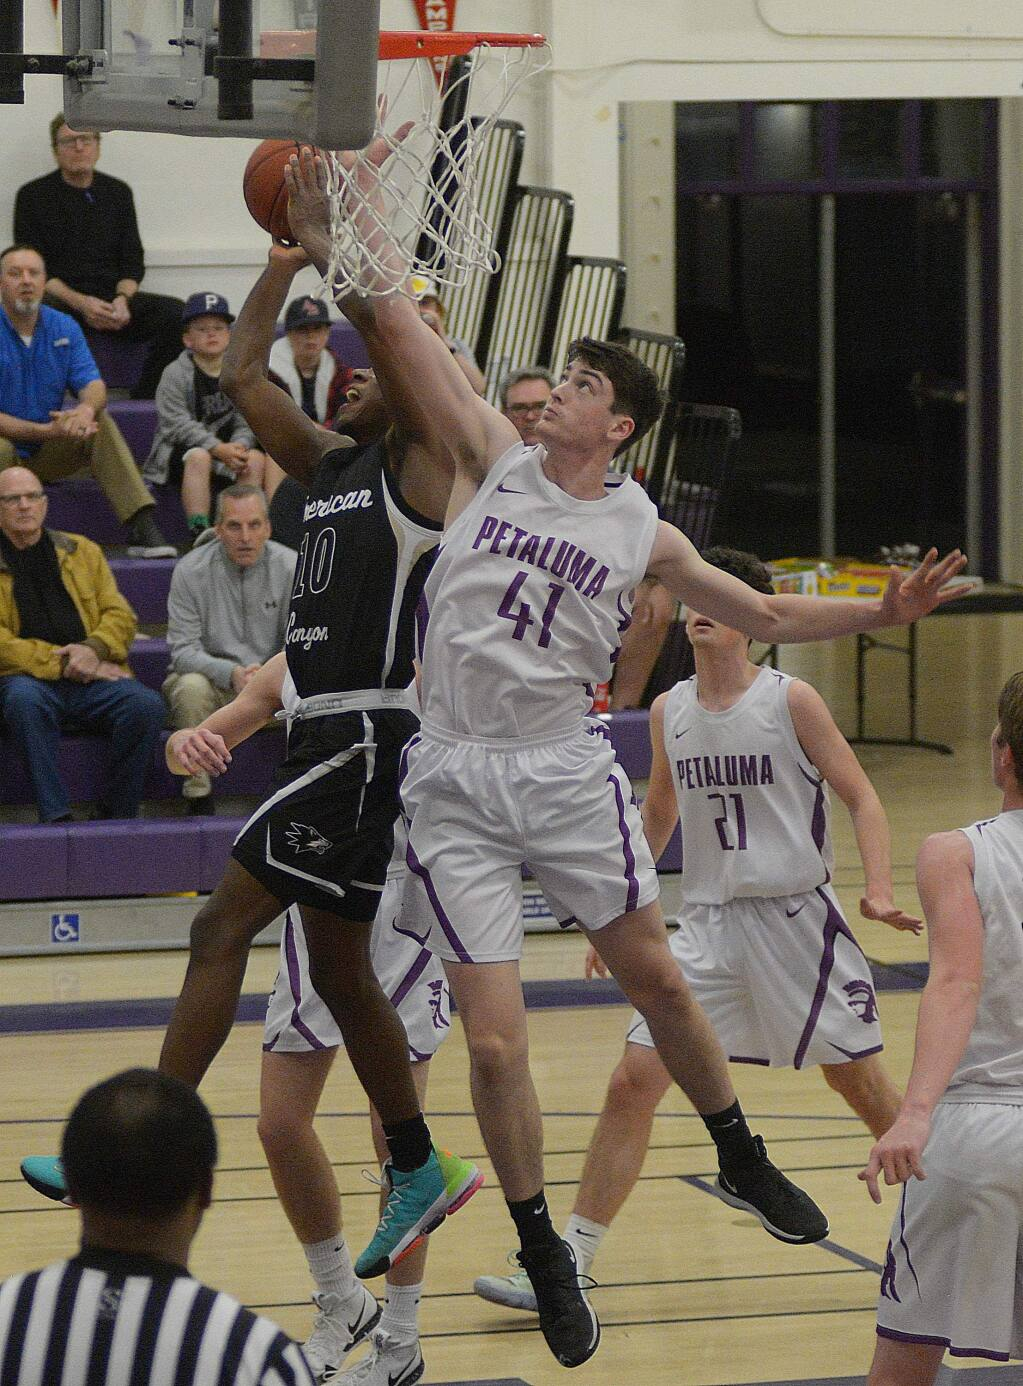 SUMNER FOWLER/FOR THE ARGUS-COURIERJulian Garrahan was not only a strong defender, but also the first option in Petaluma's offense.